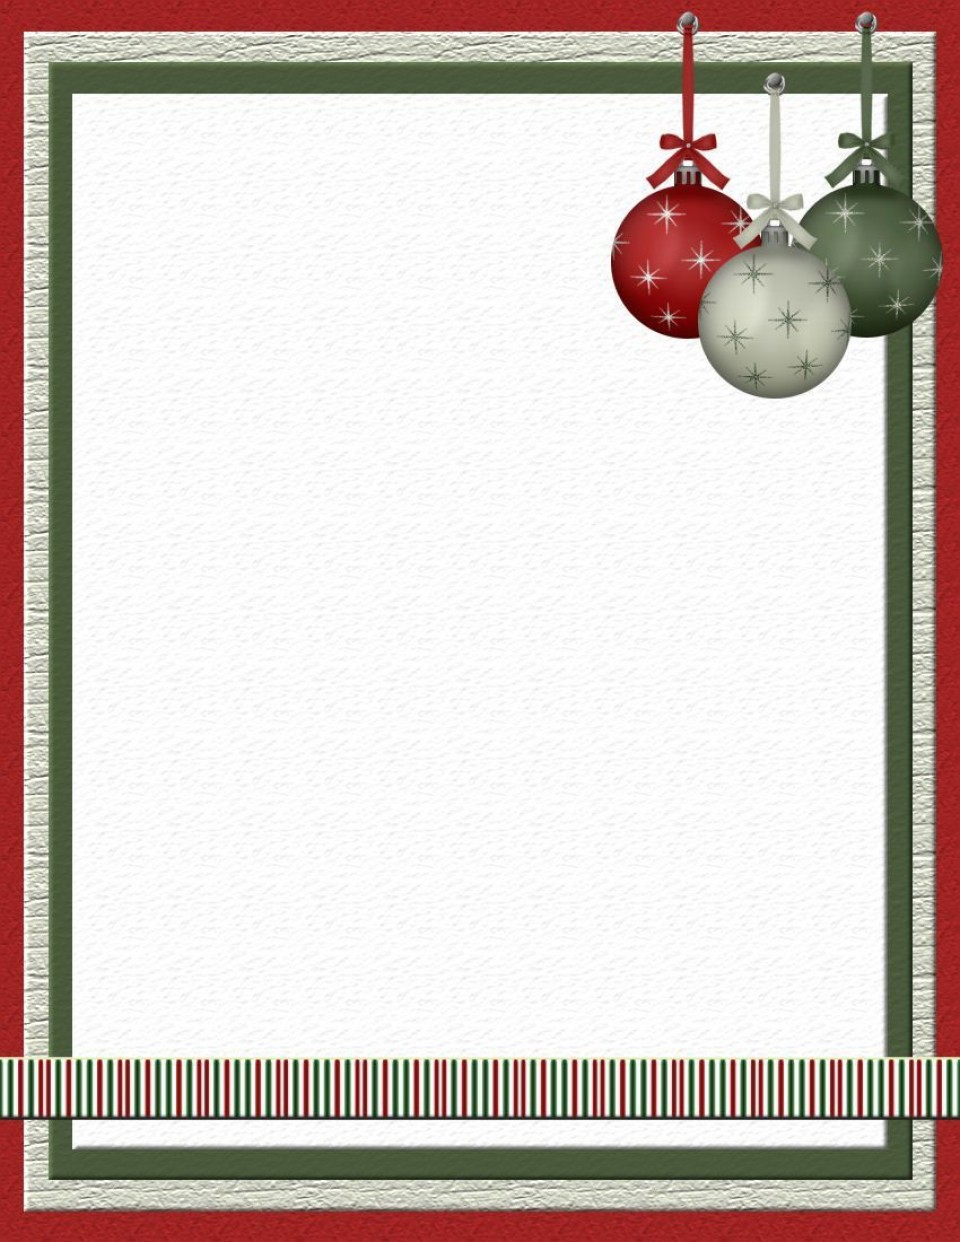 003 Amazing Christma Stationery Template Word Free High Resolution  Religiou For Downloadable960